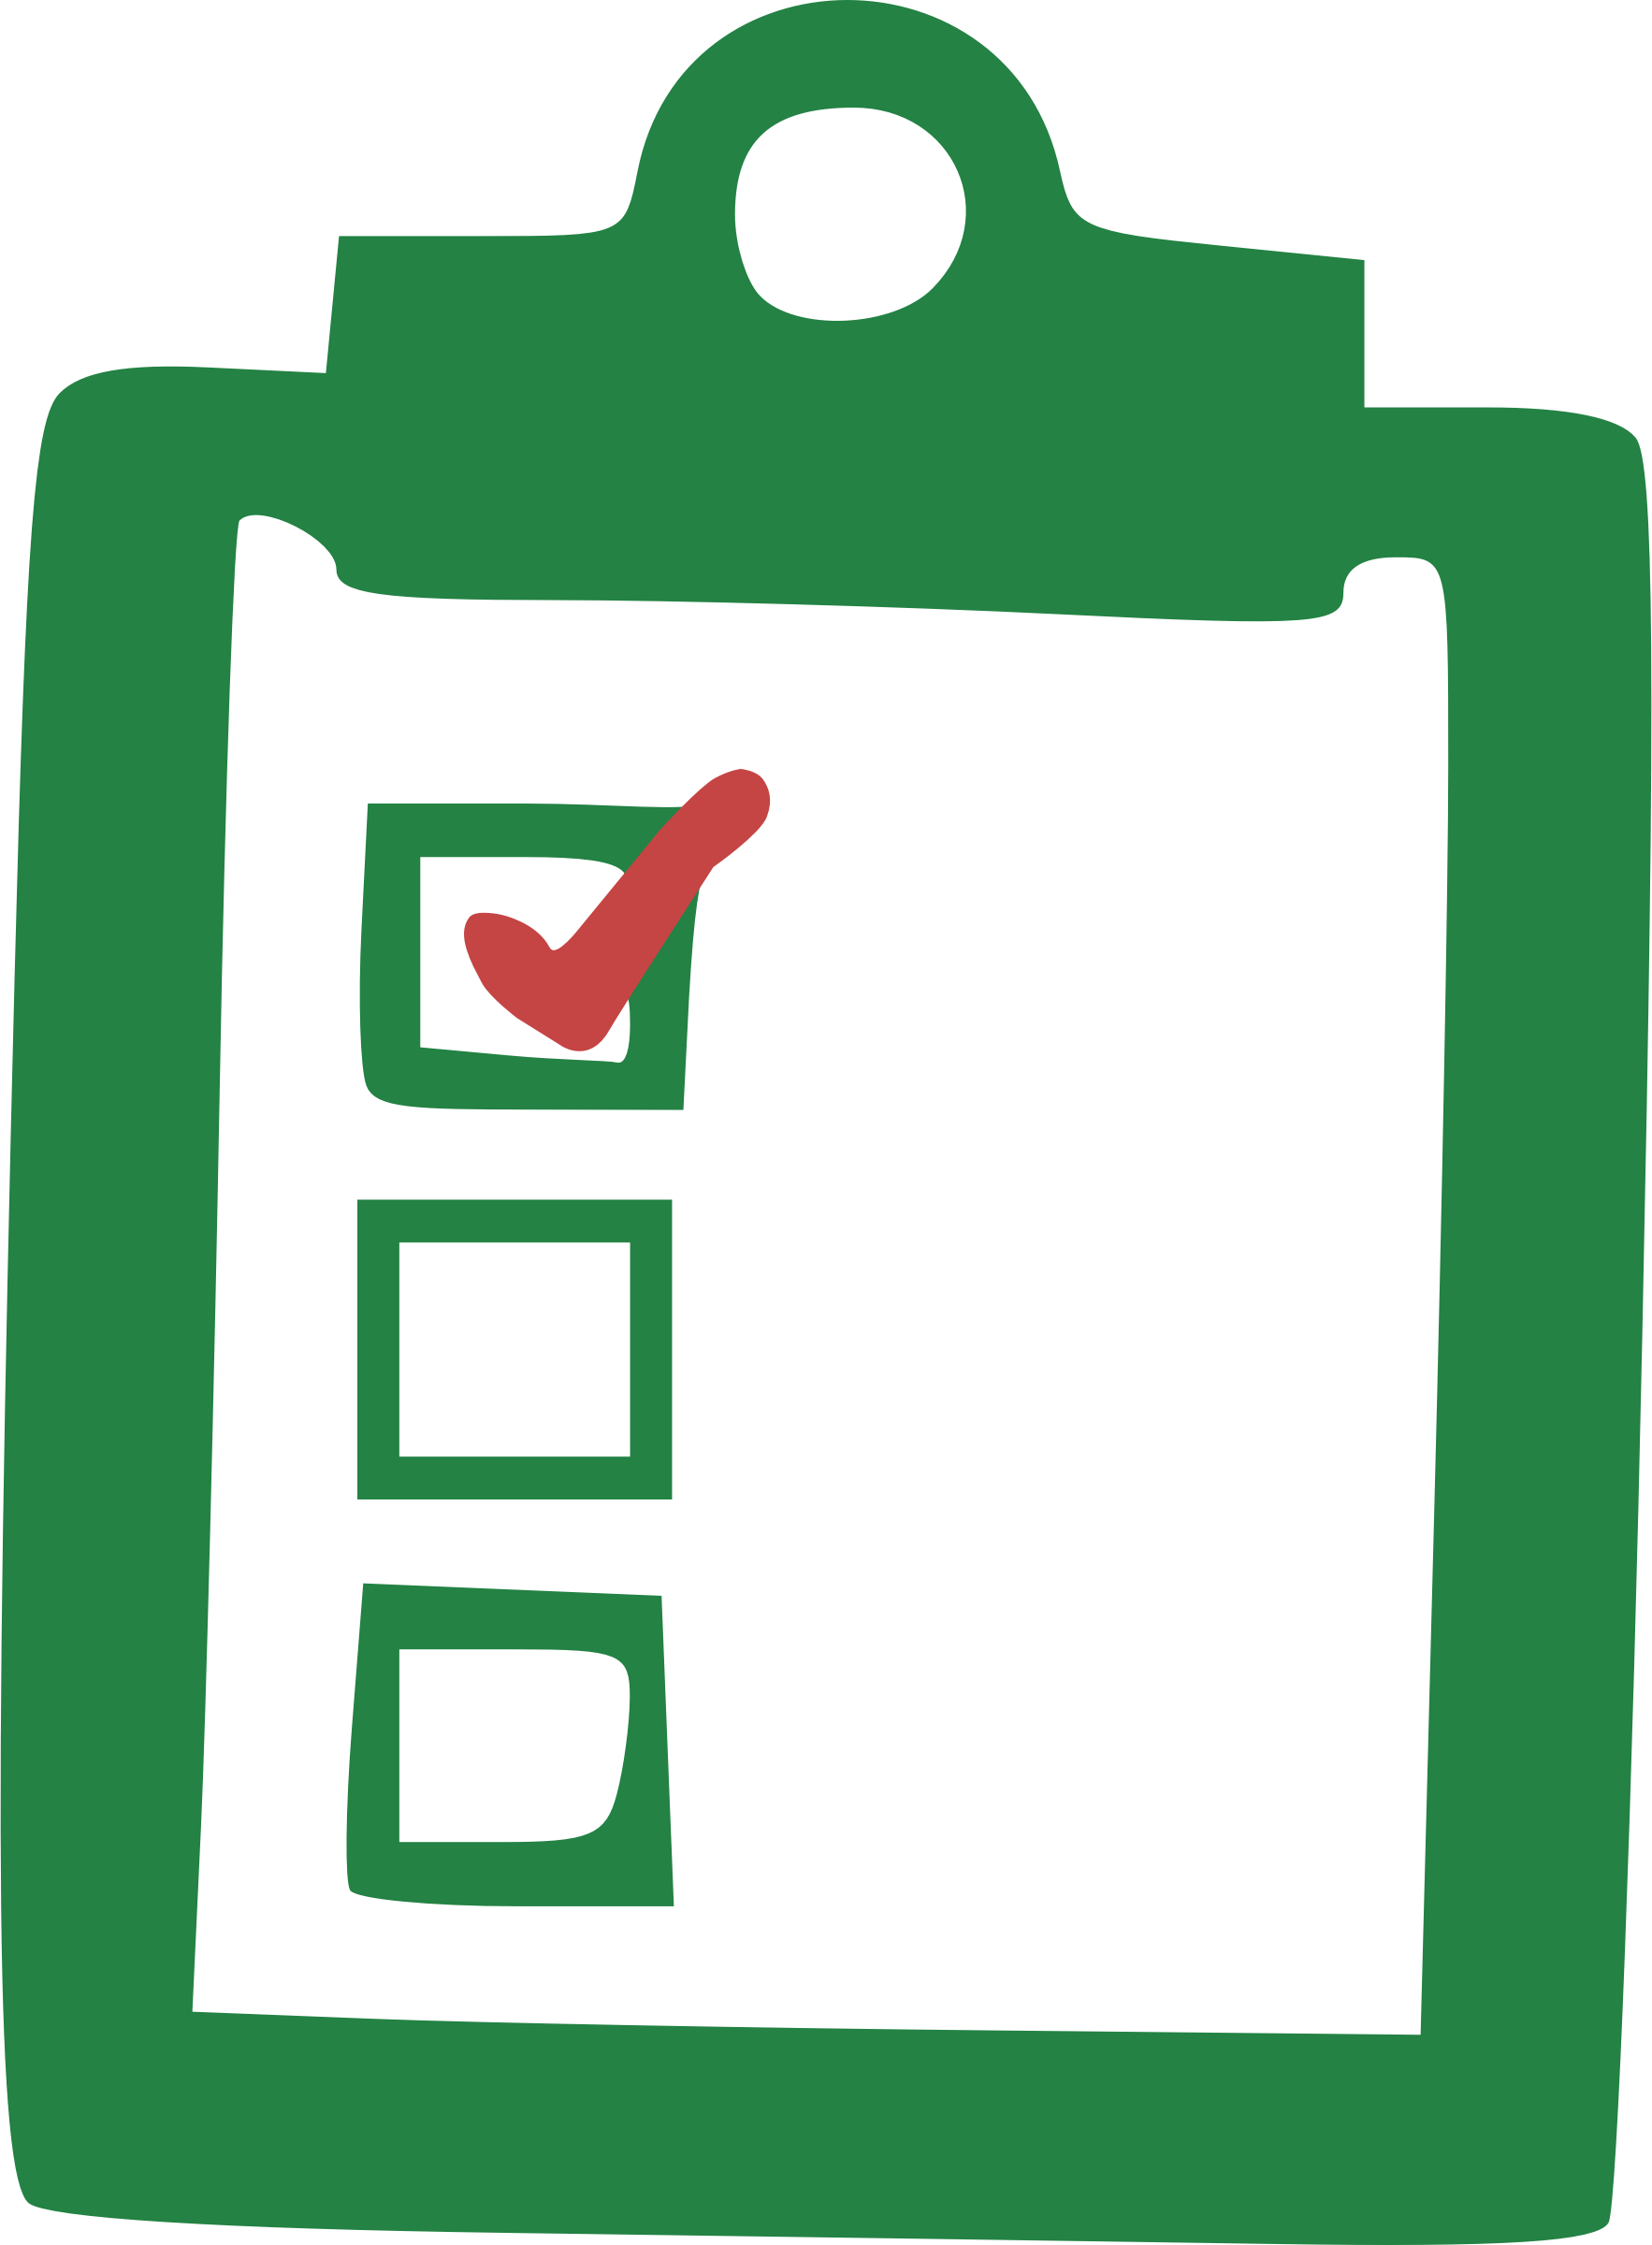 Checklist clipart thing. Big image png